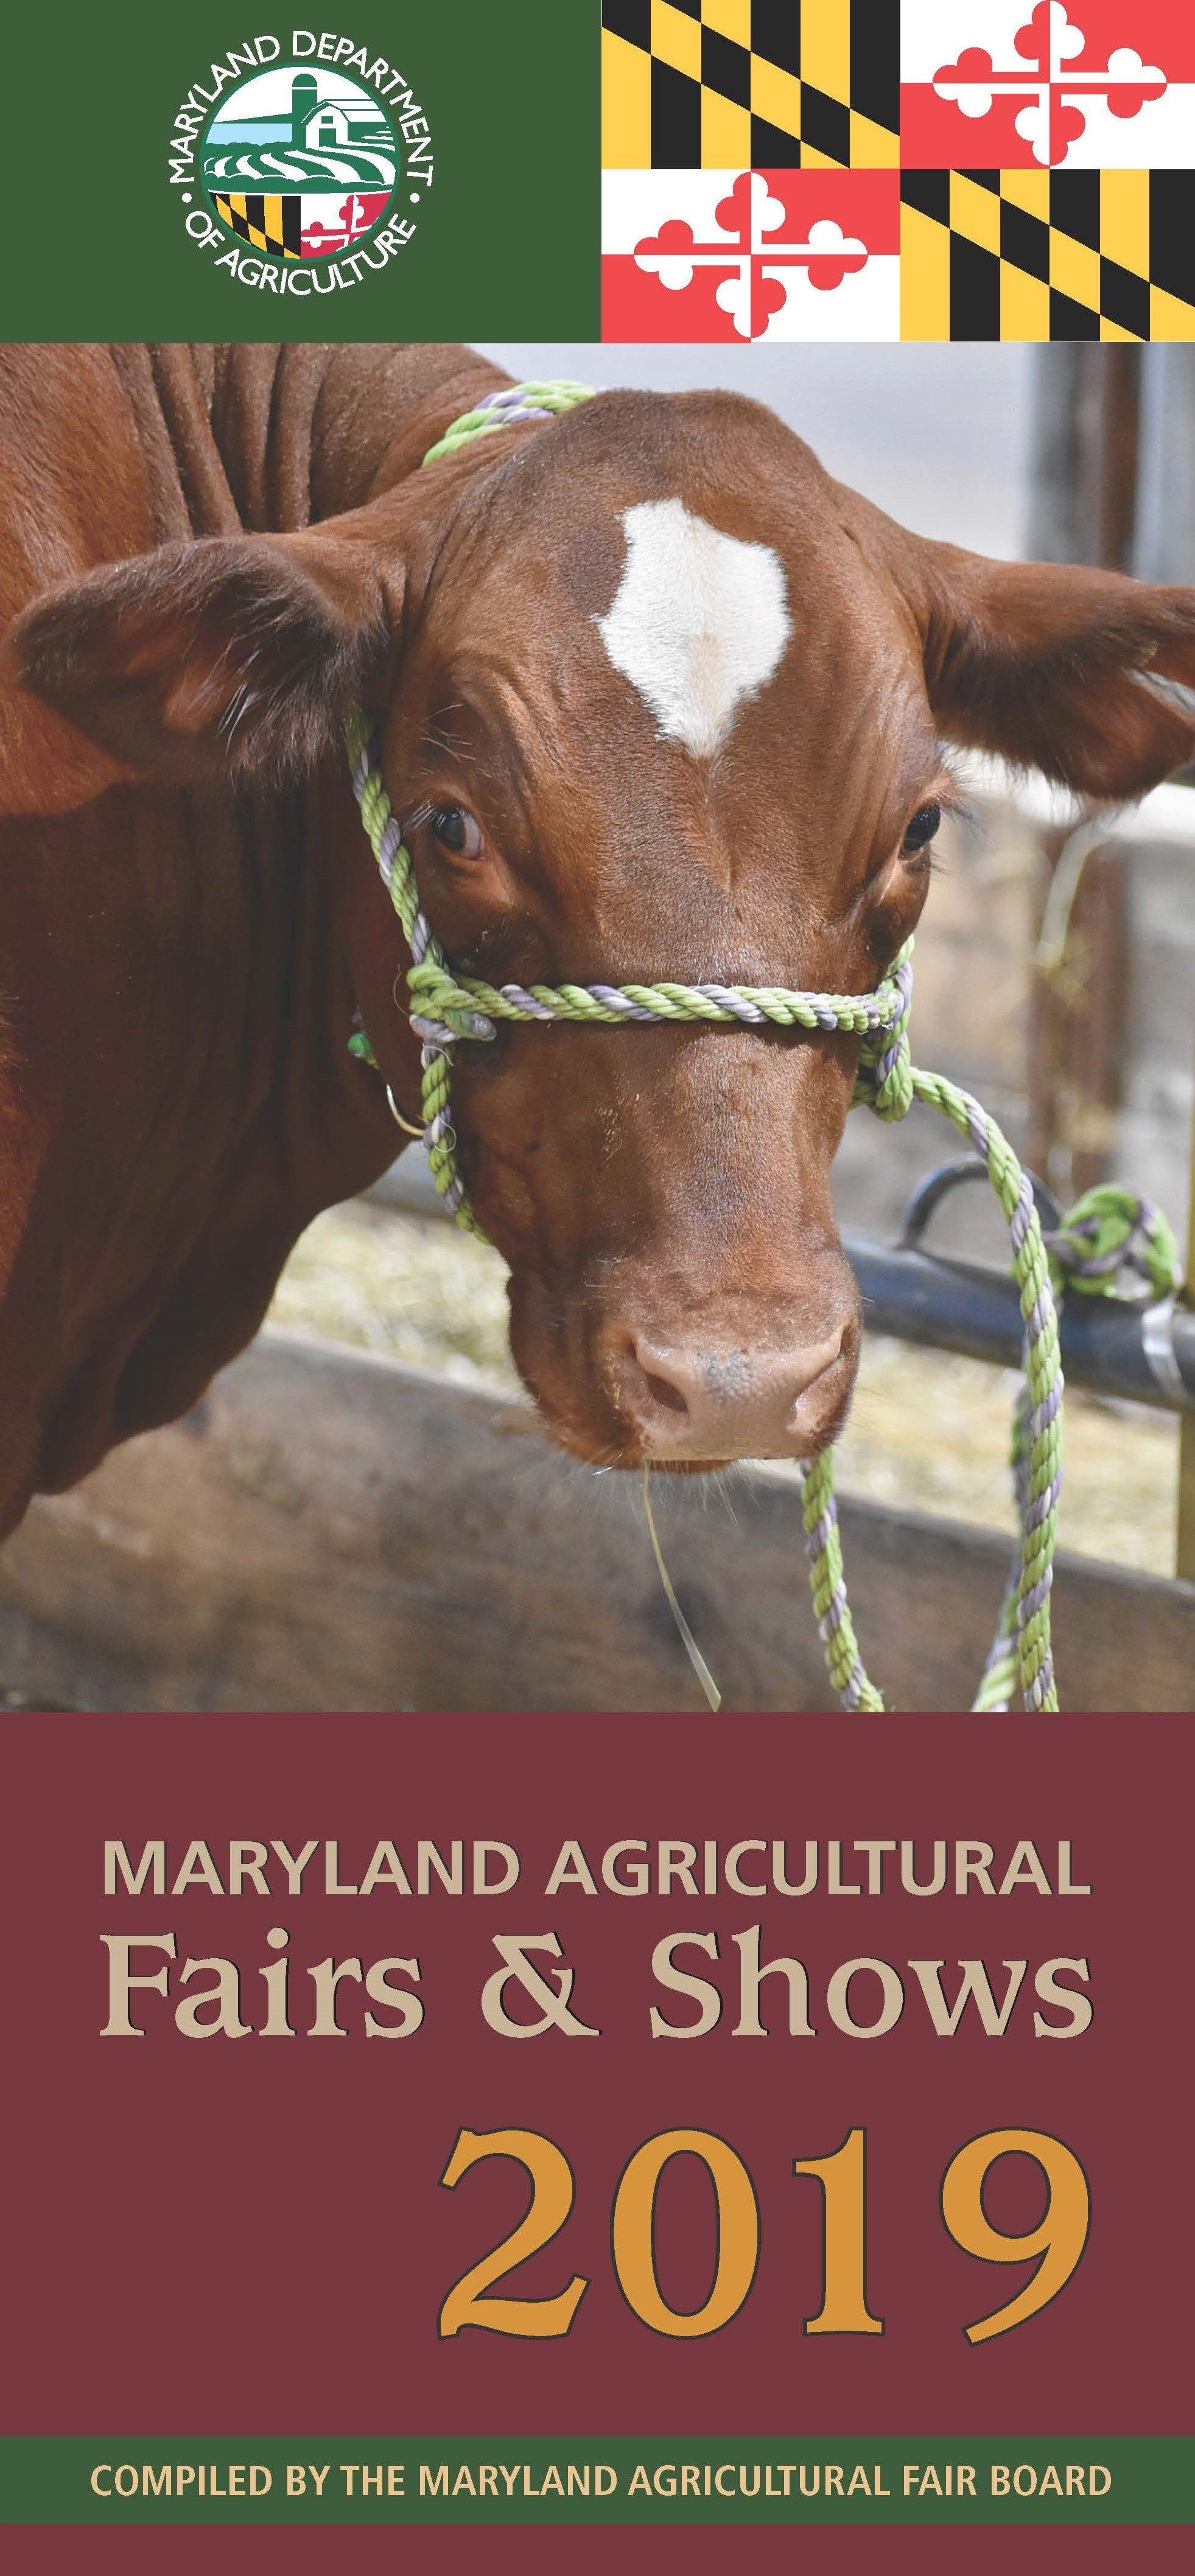 2019 Maryland Agricultural Fairs & Shows